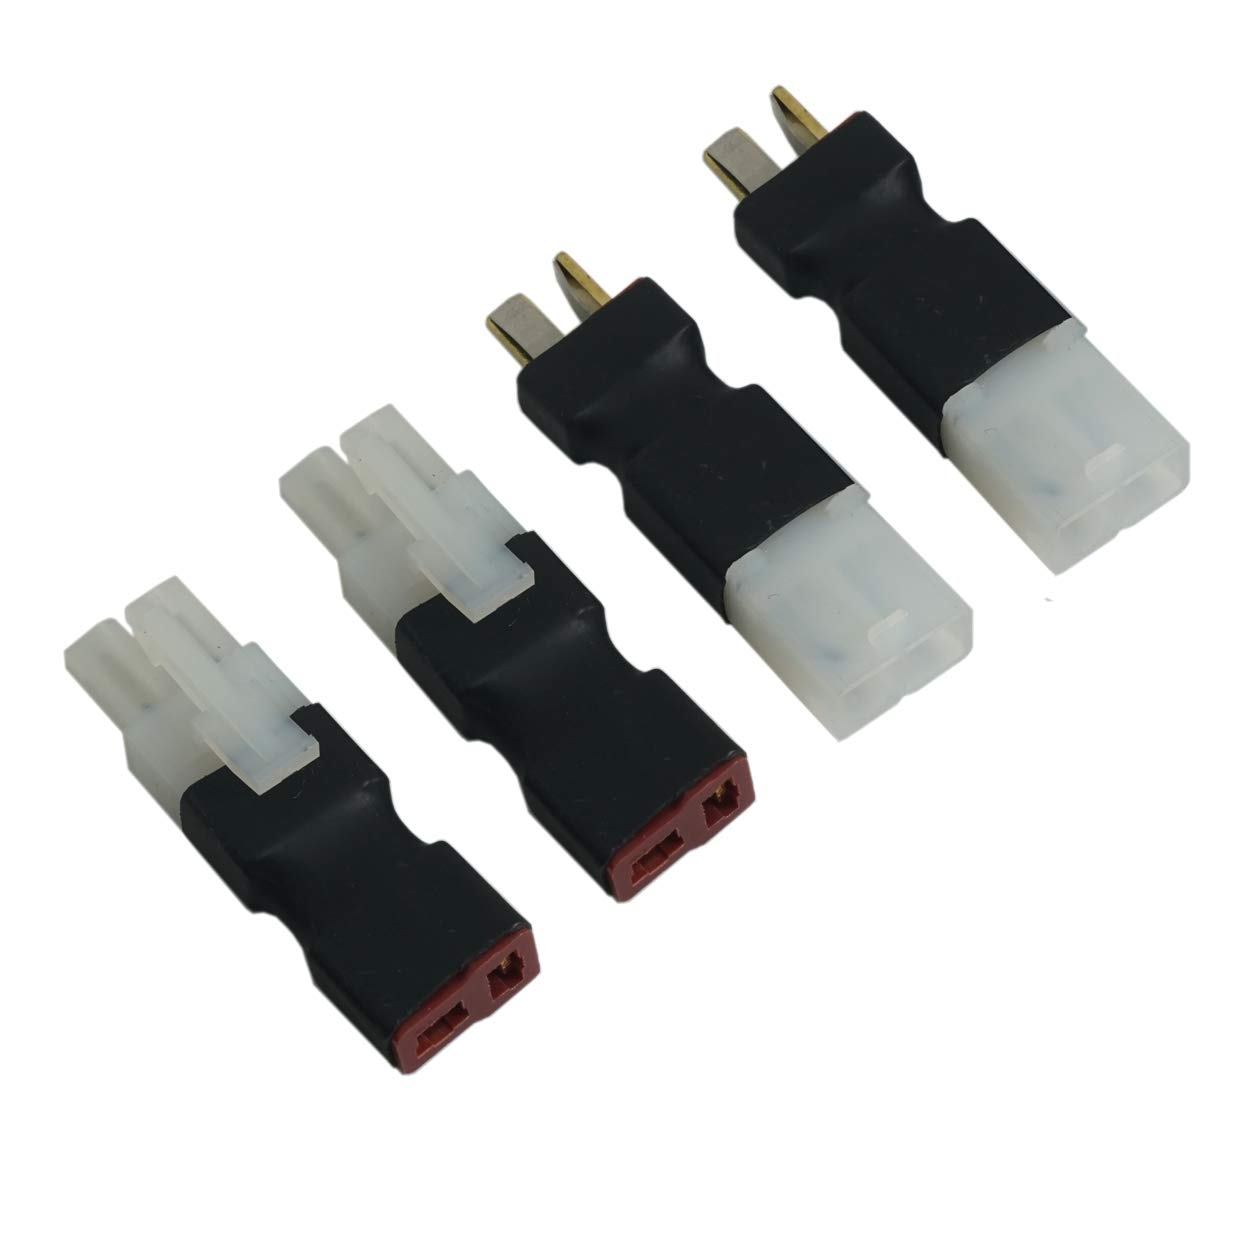 2 Pair ShareGoo No Wires Big Tamiya Style to Deans T Style Plug Female Male Adapter Wireless Connector for RC FPV Drone Car Truck Lipo NiMH Battery Charger ESC